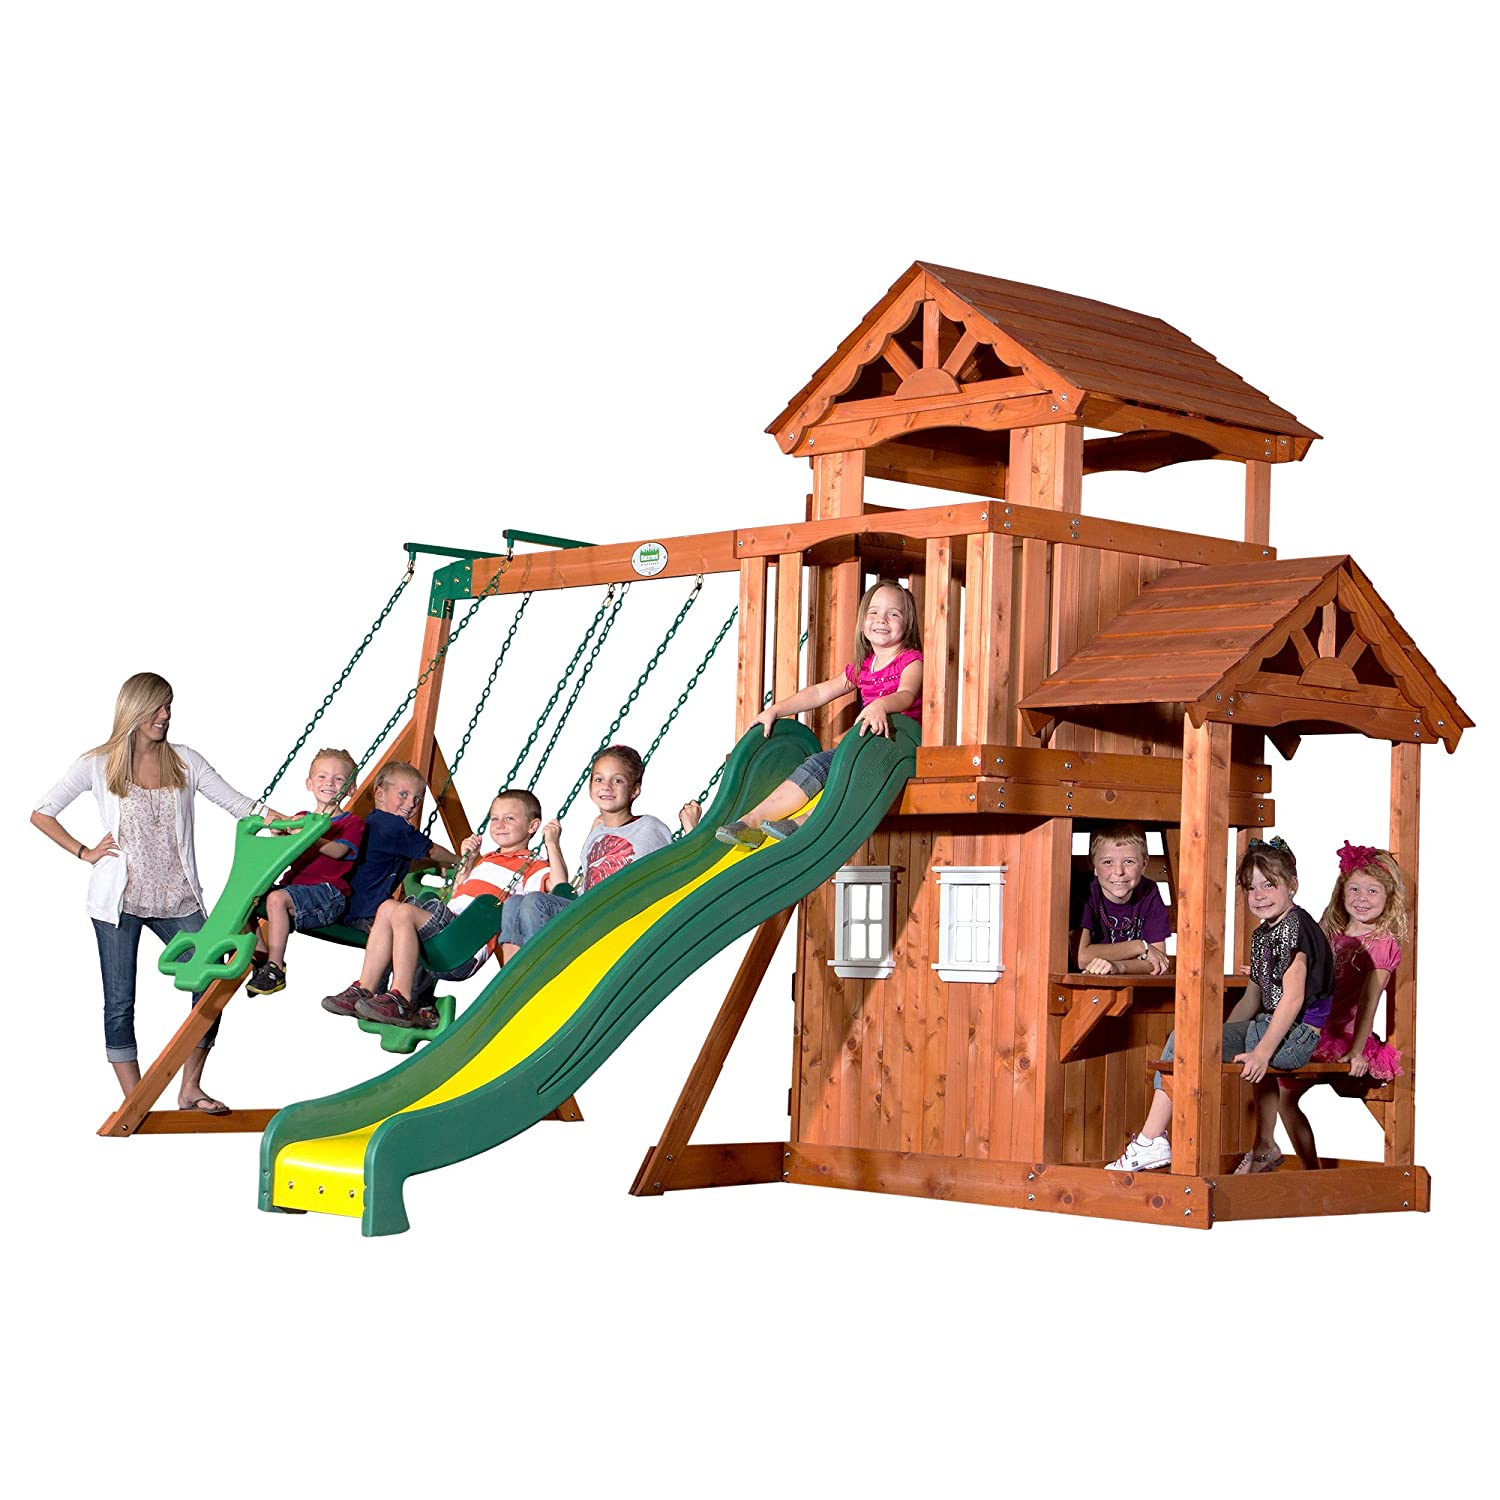 11 Best Outdoor Playsets for Toddlers Reviews of 2021 17